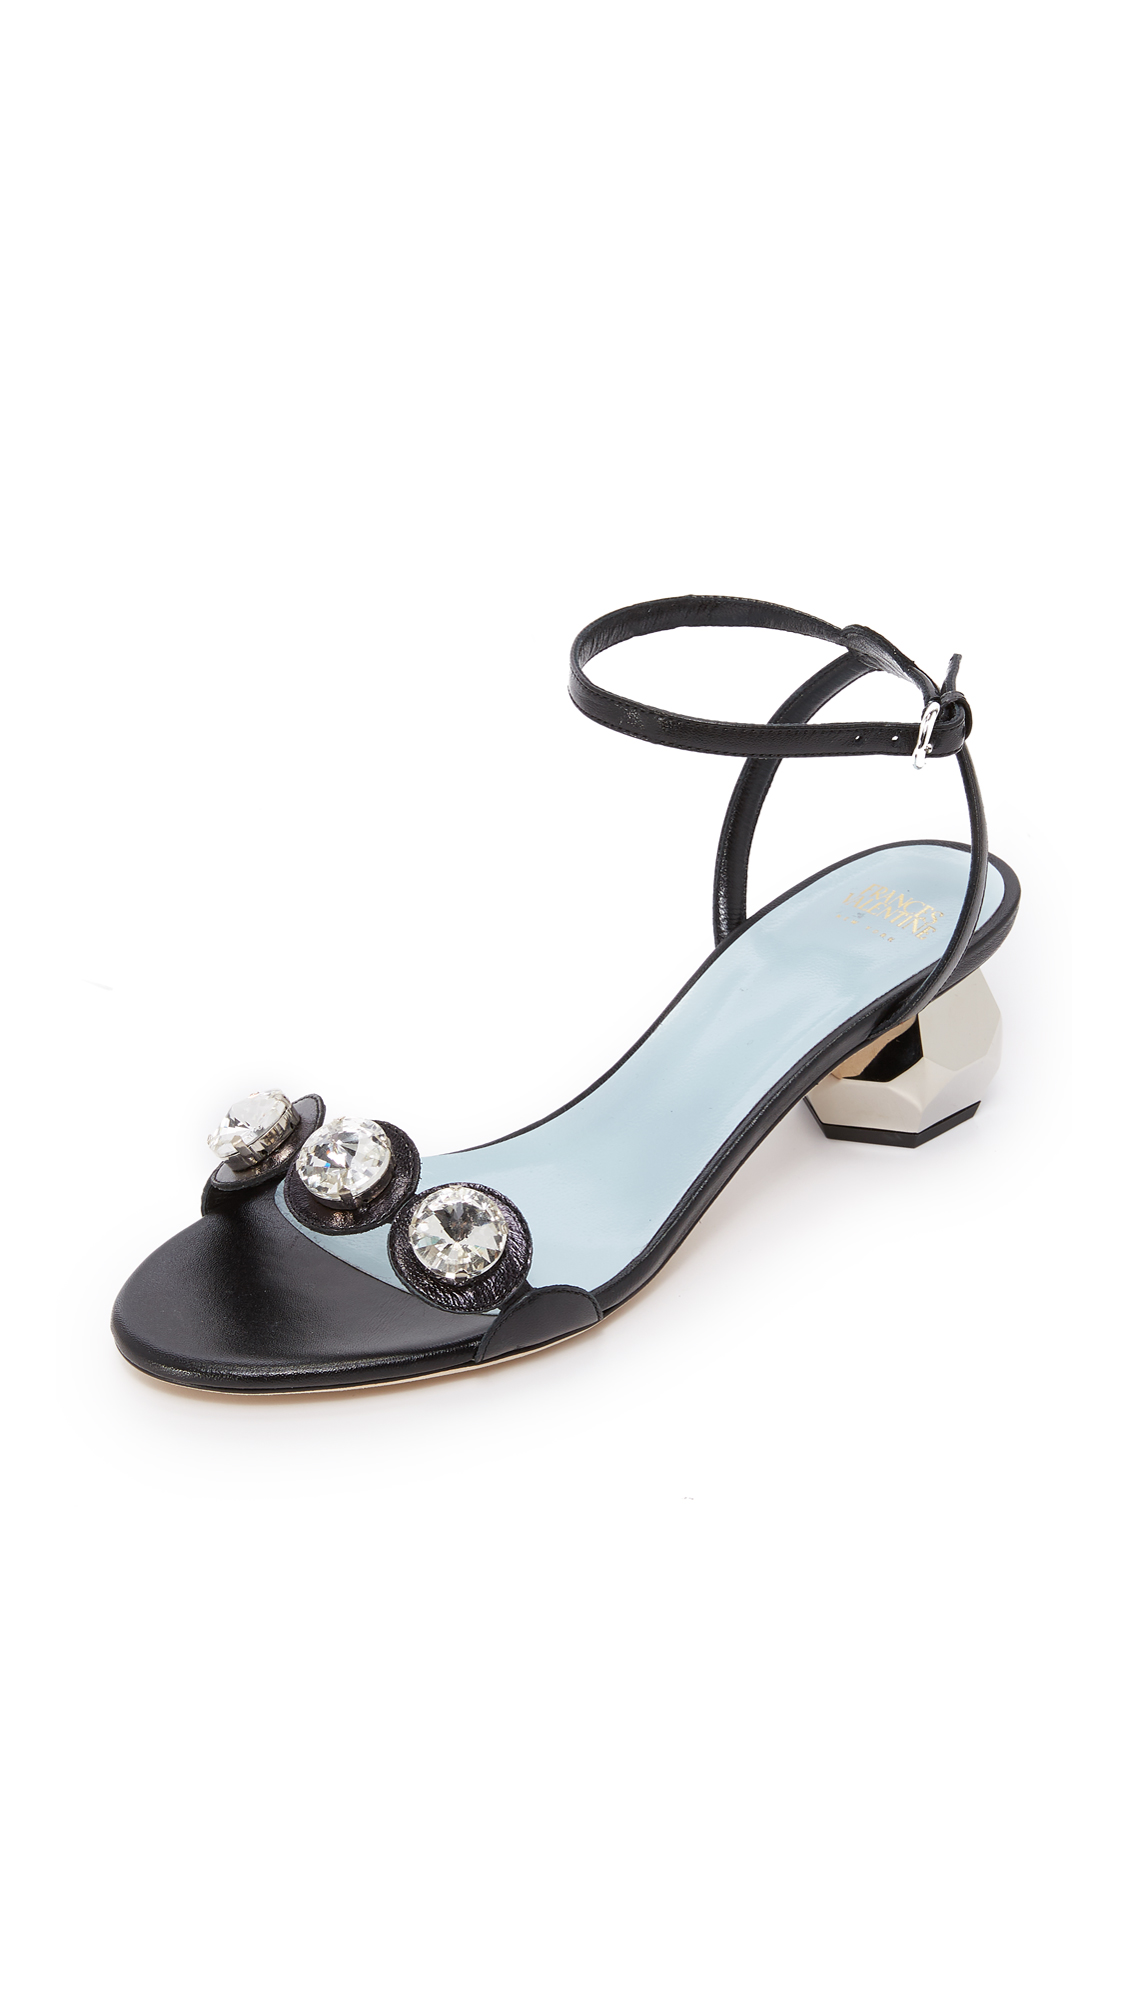 Frances Valentine Beatrix Crystal City Sandals - Black